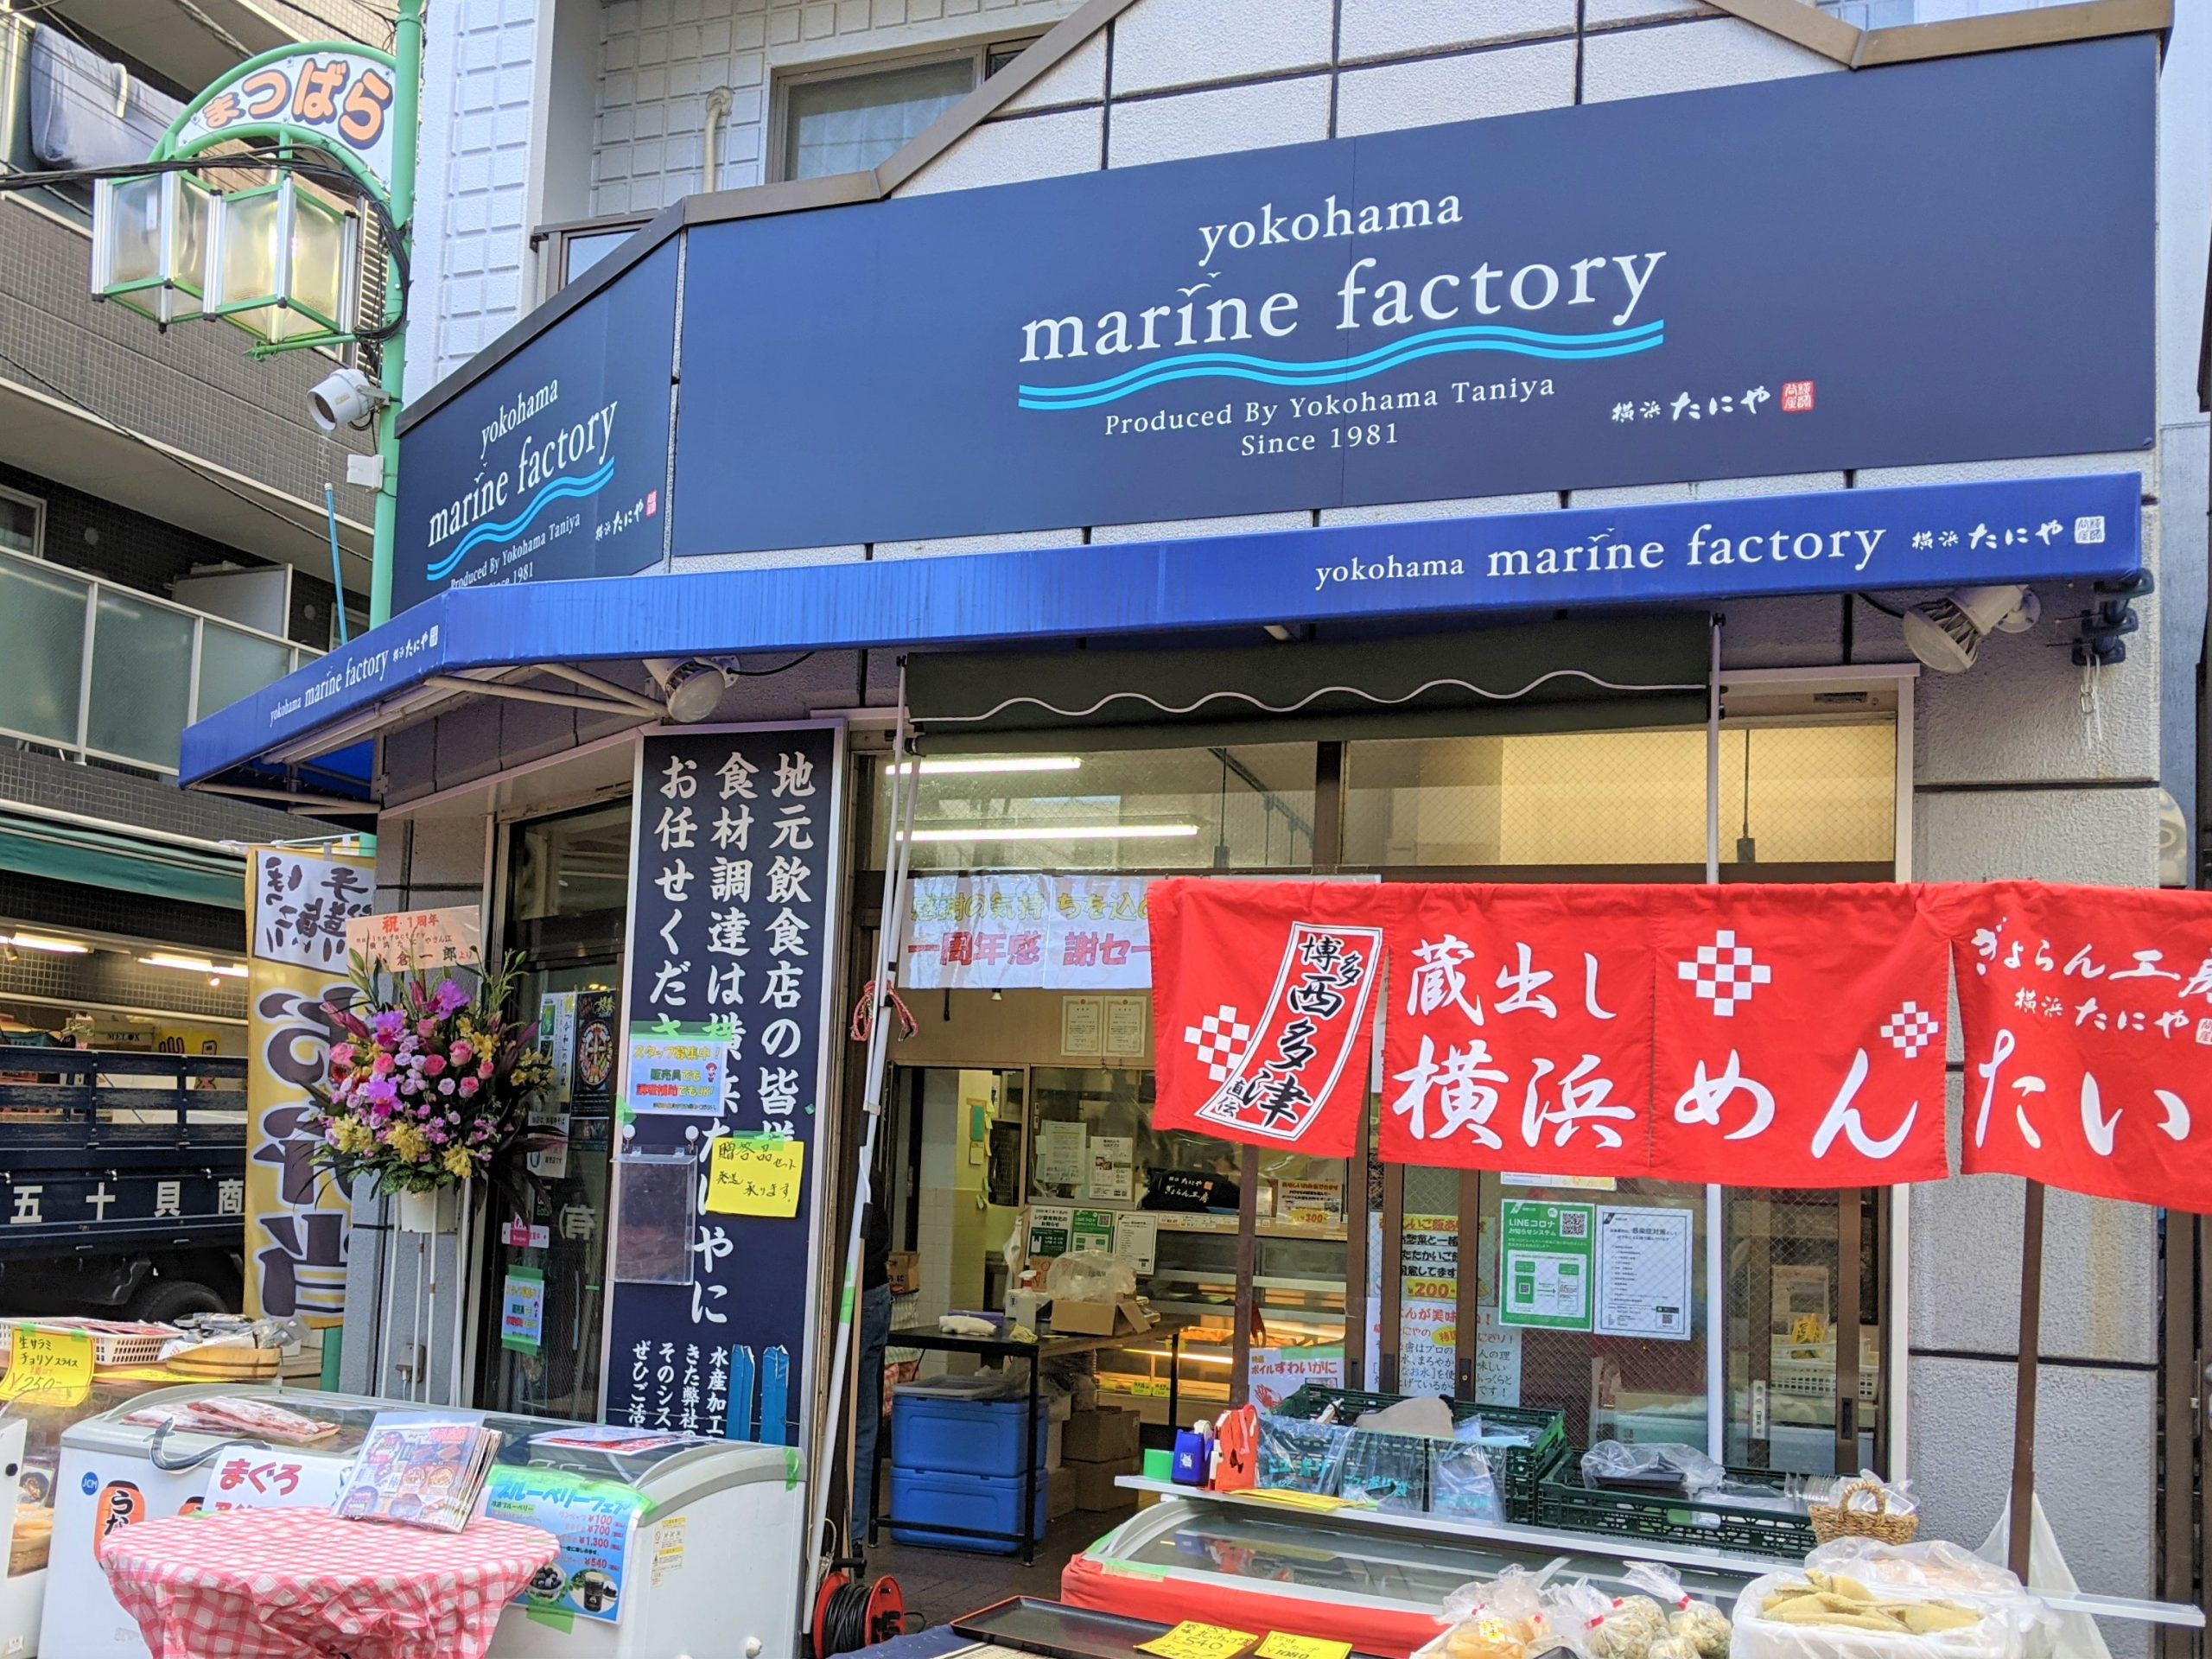 https://shop.gyorankobo.jp/wp-content/uploads/2021/01/yokohama marine factory外観-scaled.jpg